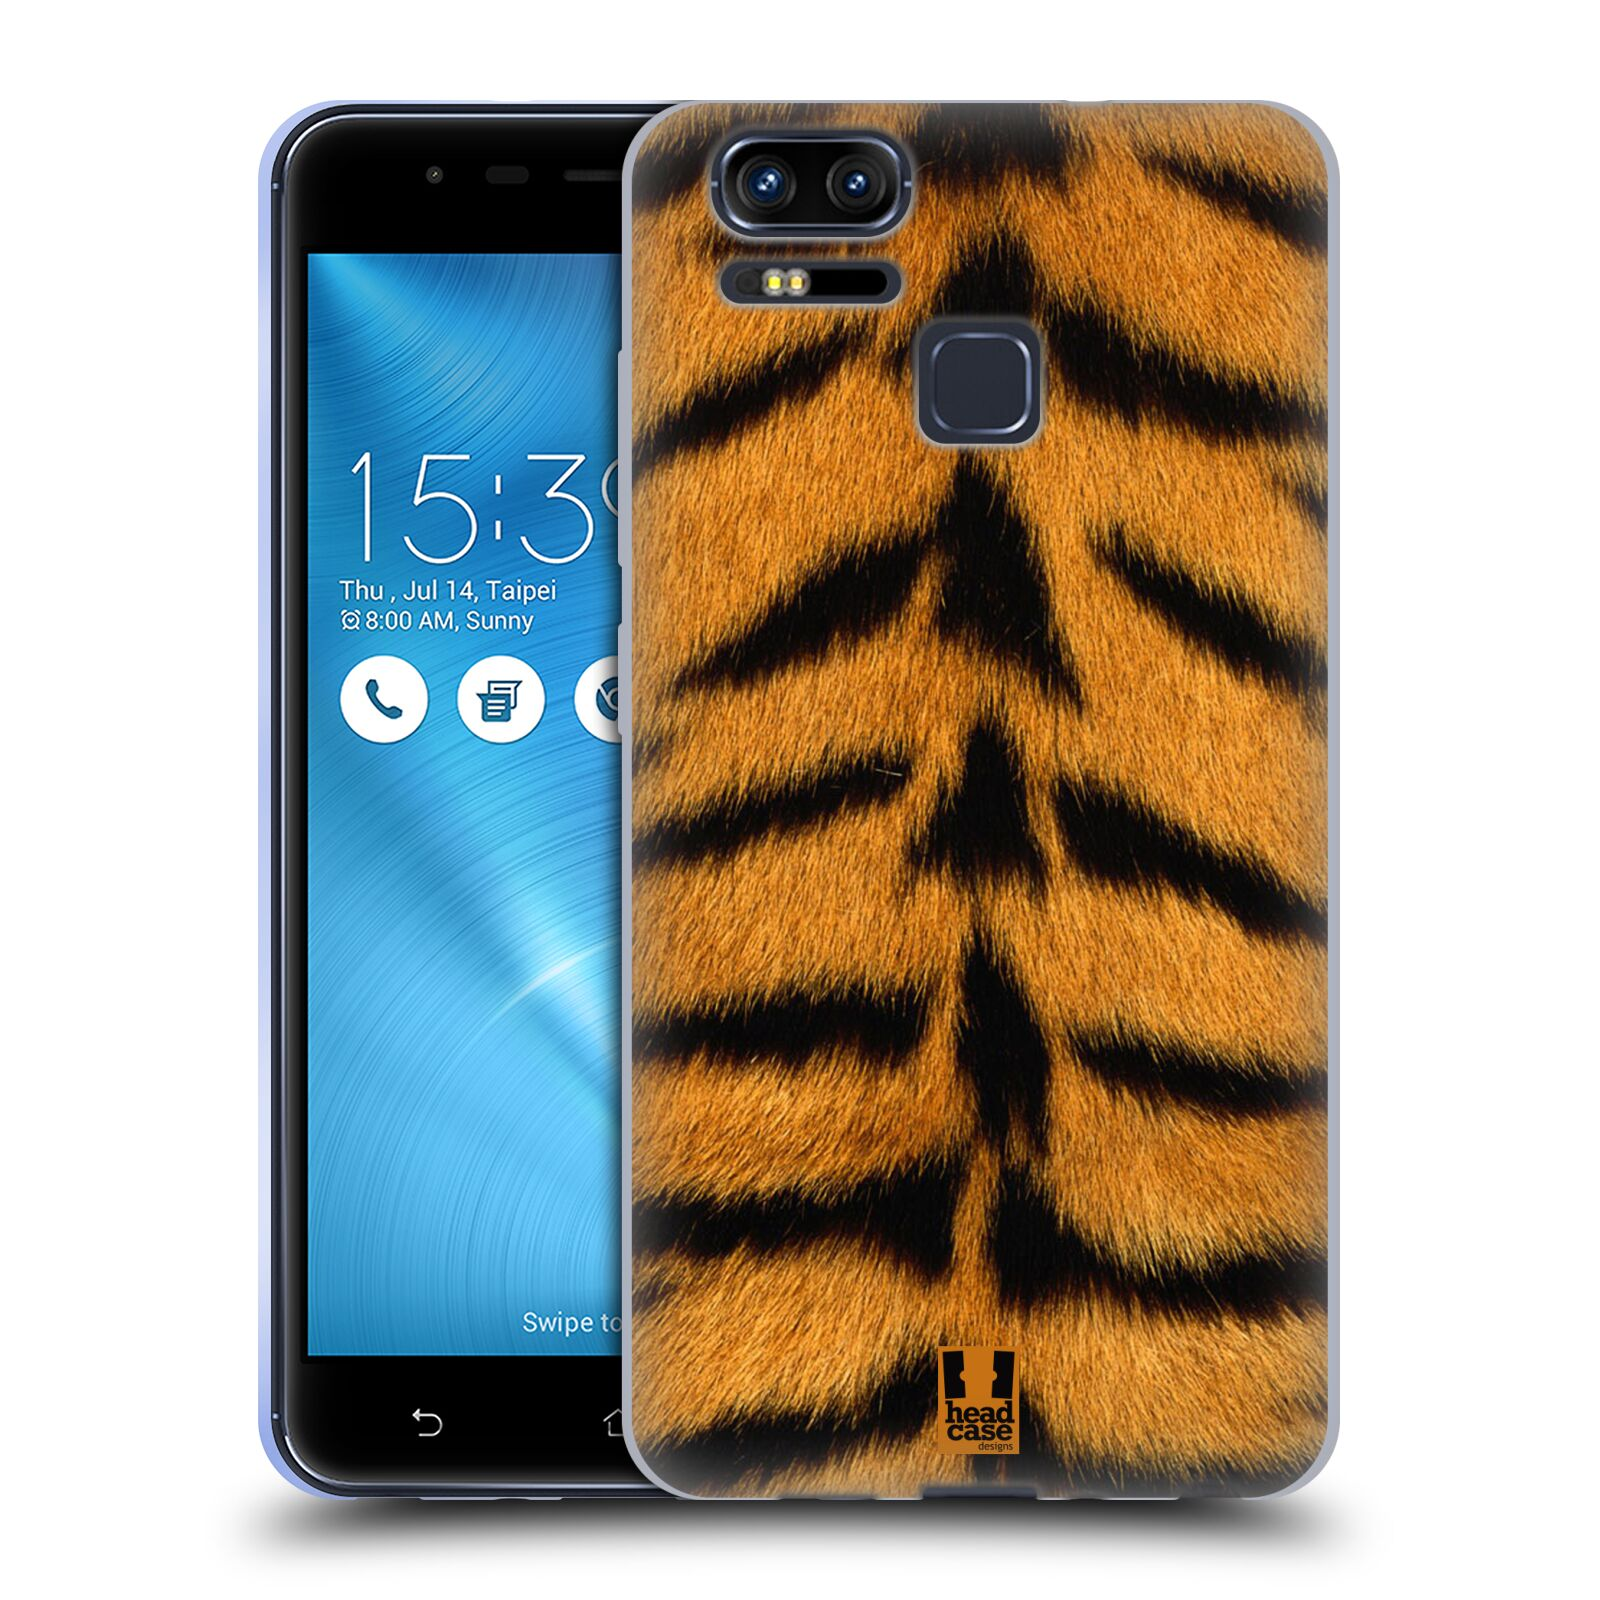 HEAD-CASE-DESIGNS-FURRY-COLLECTION-SOFT-GEL-CASE-FOR-ASUS-ZENFONE-3-ZOOM-ZE553KL